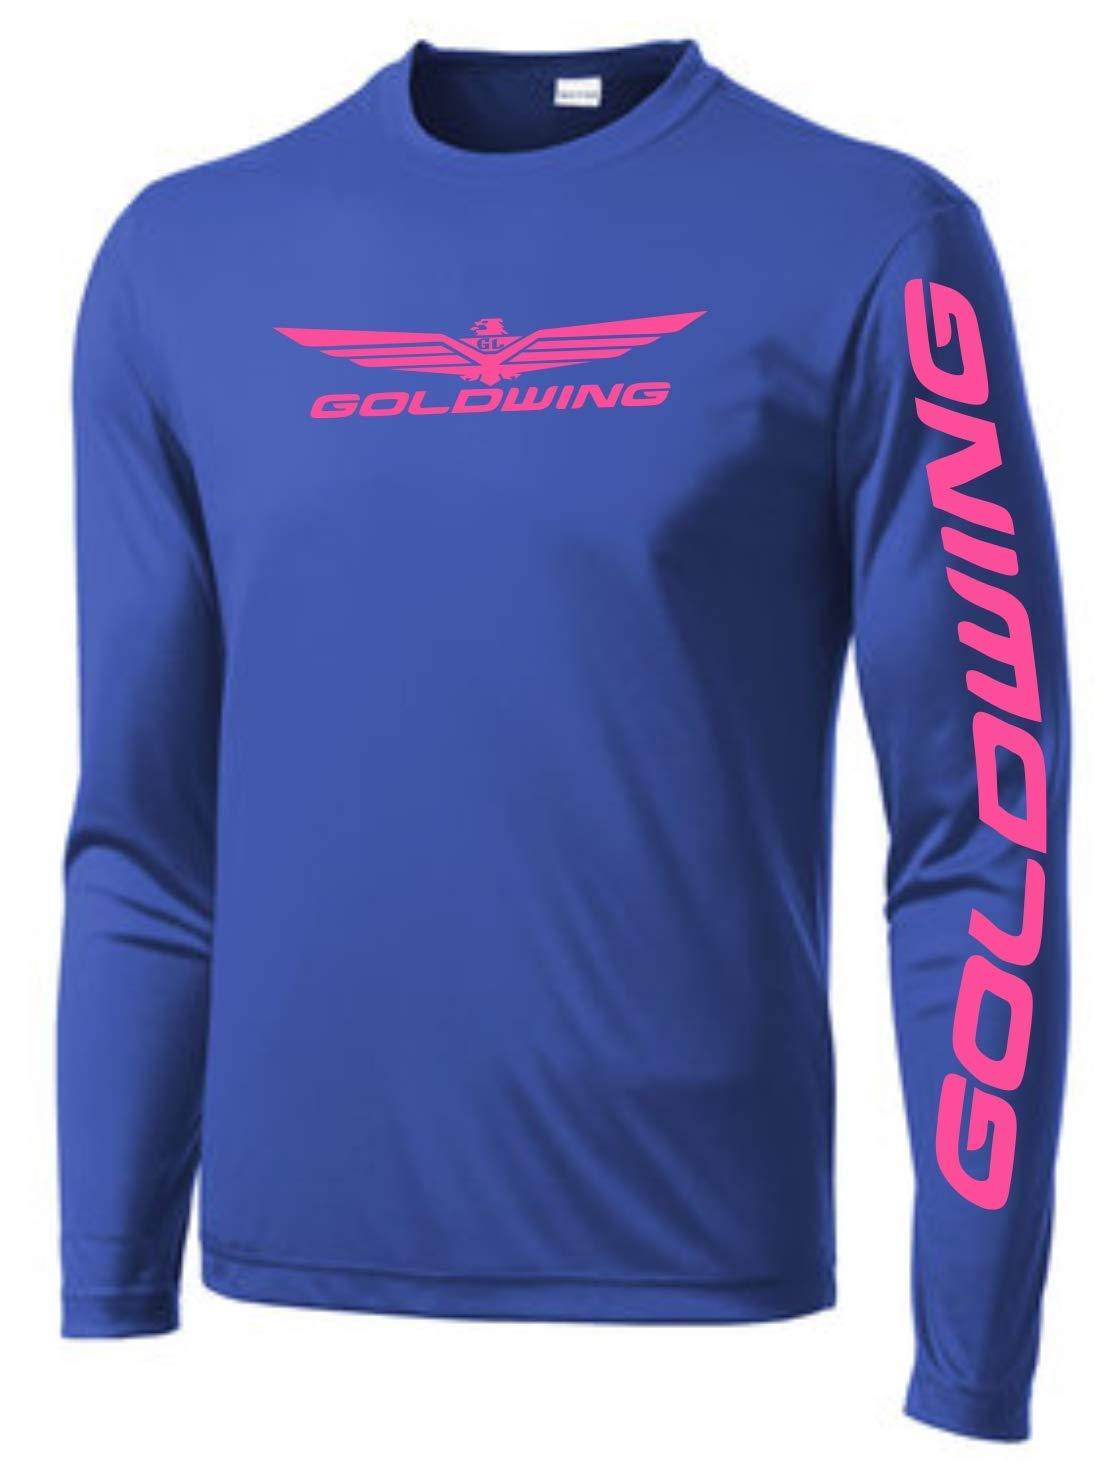 Unisex Long Sleeve Goldwing Ranking TOP18 wicking T-shirt We OFFer at cheap prices visibility roya high